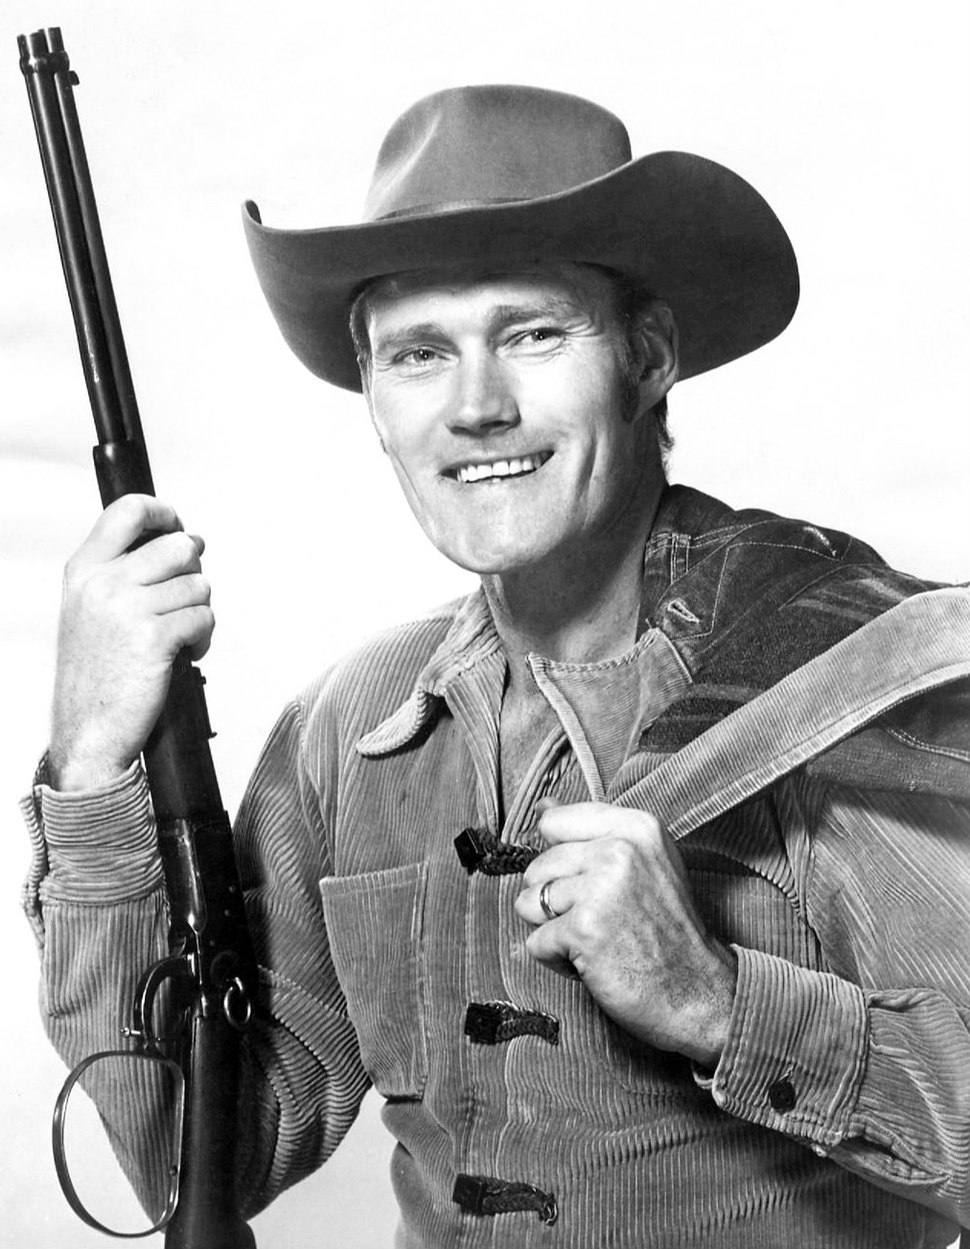 Chuck Connors The Rifleman 1959